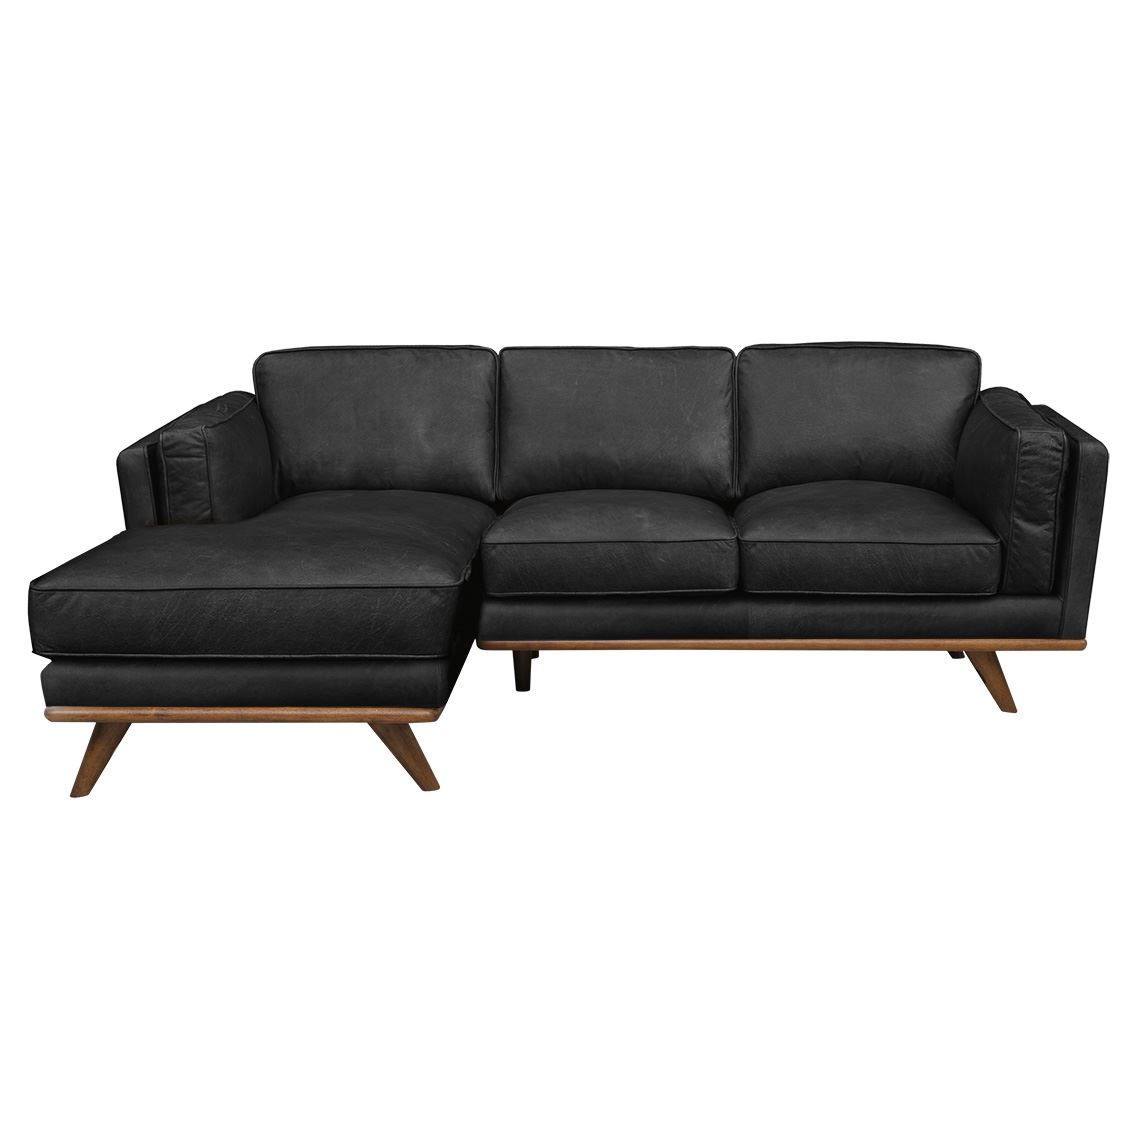 Dahlia 2 Seat Leather Modular Sofa With Right Chaise